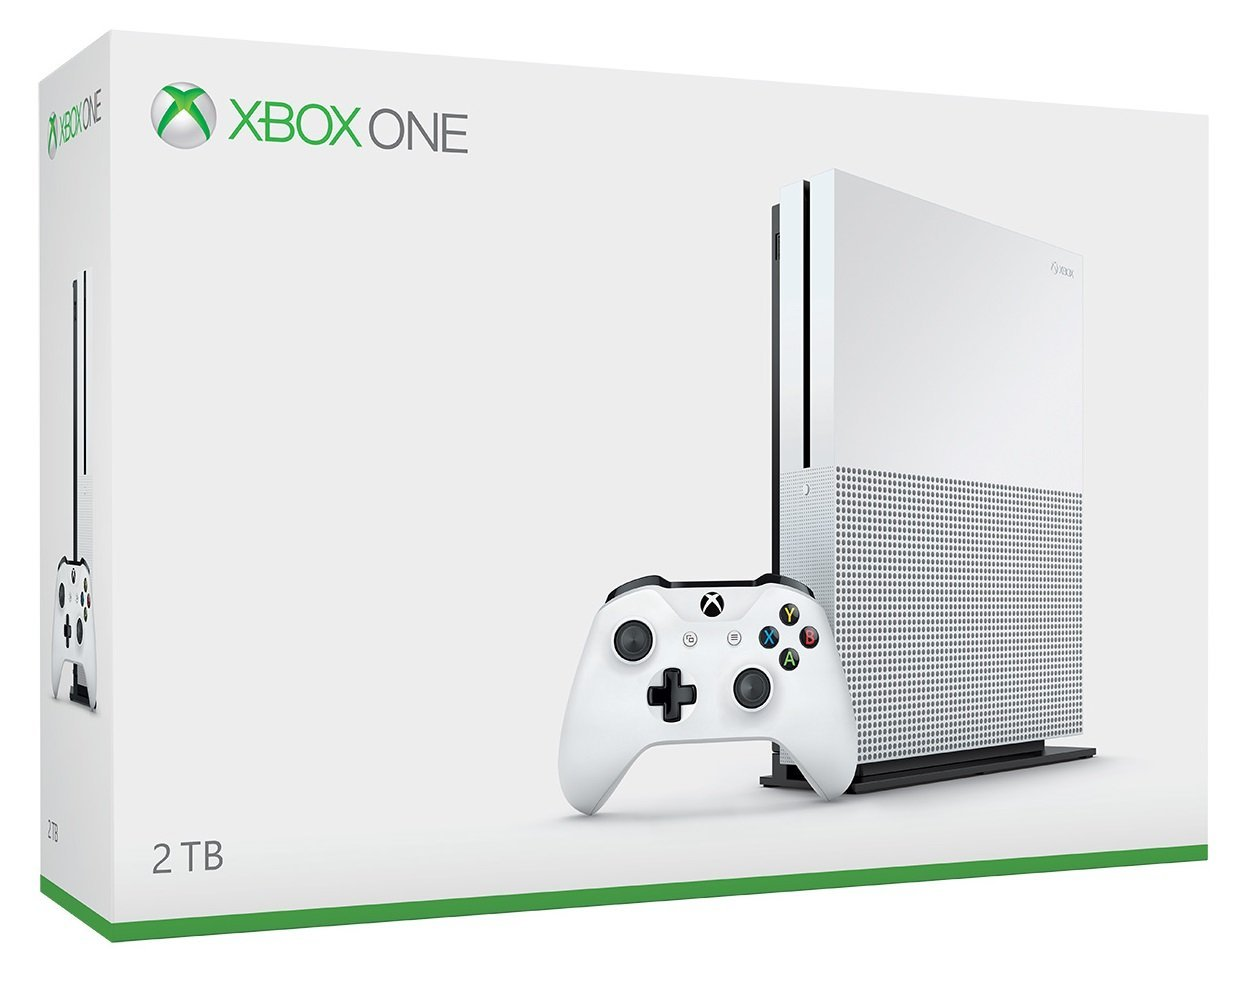 Is The Xbox One S 2TB Console Launch Edition Worth Buying